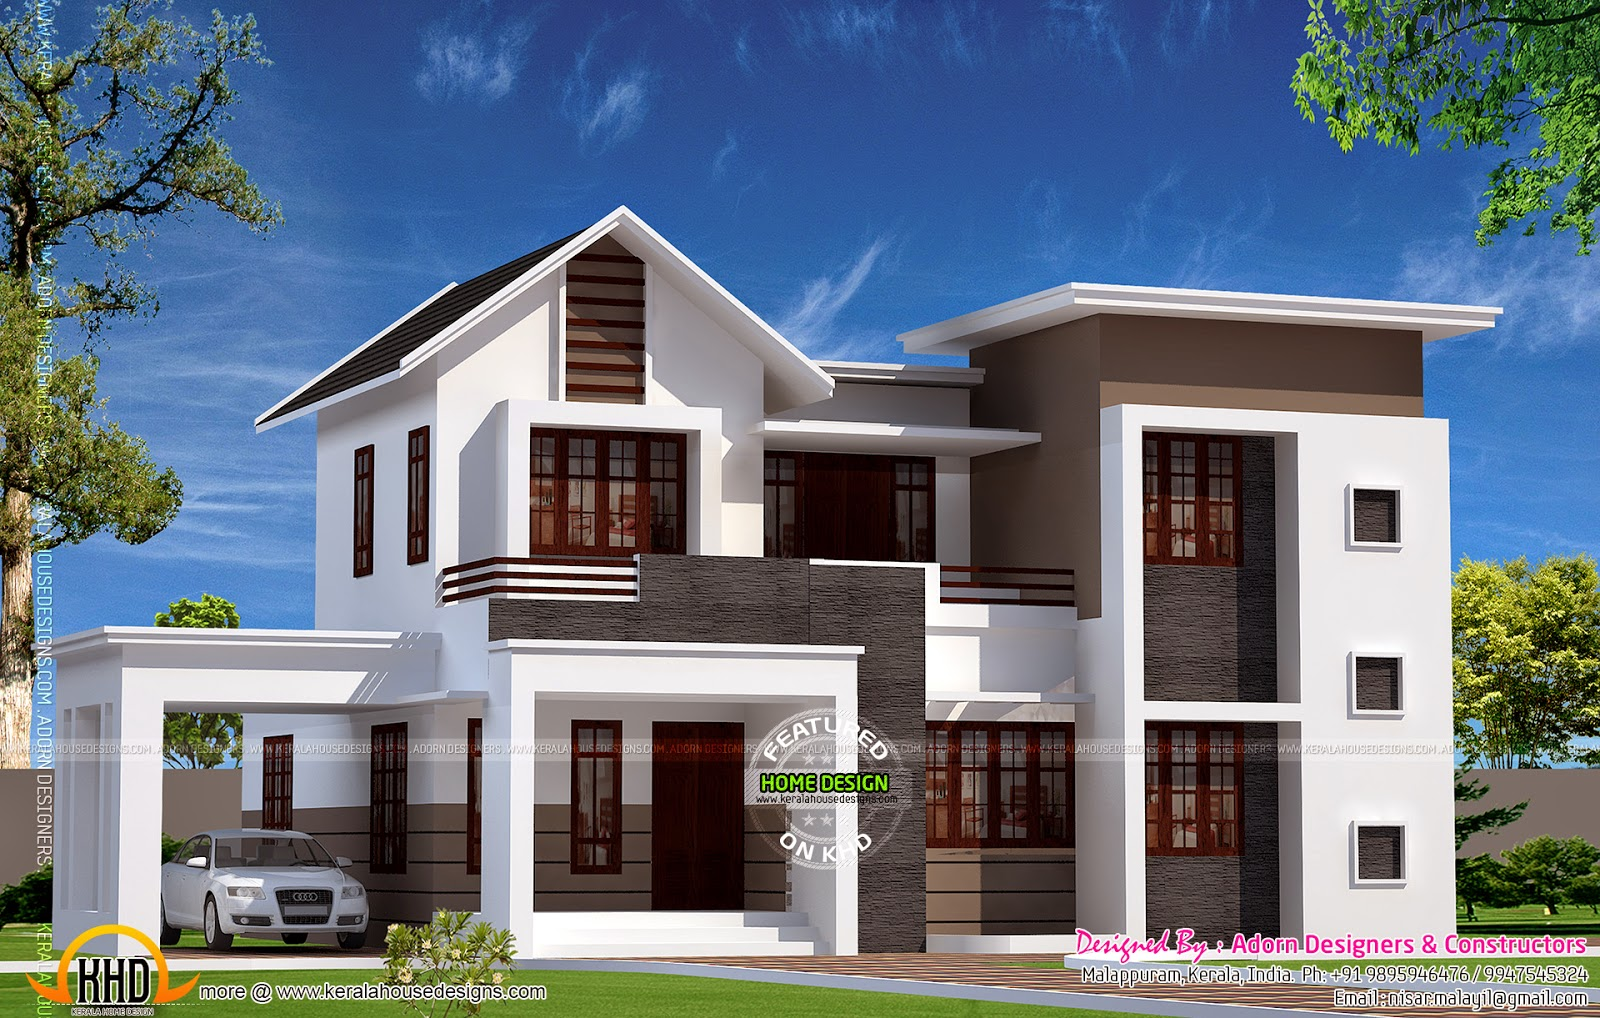 New house design in 1900 sq feet kerala home design and for Designing your new home